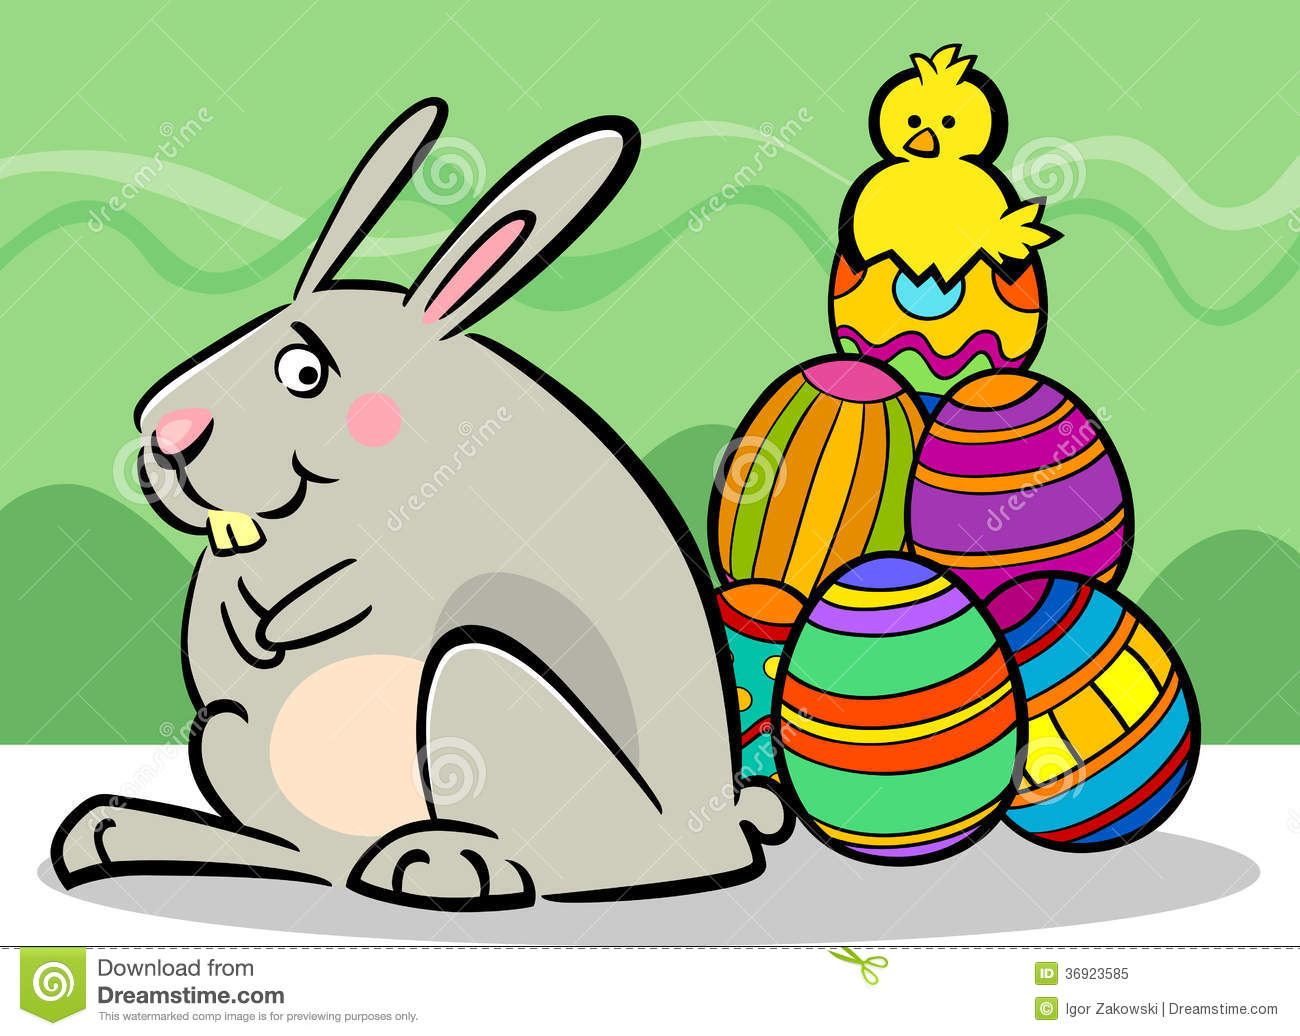 These free Easter clip art images include Easter animals such as bunnies and chicks lots of Easter eggs kids having fun on Easter springtime flowers crosses Easter baskets birds and much more